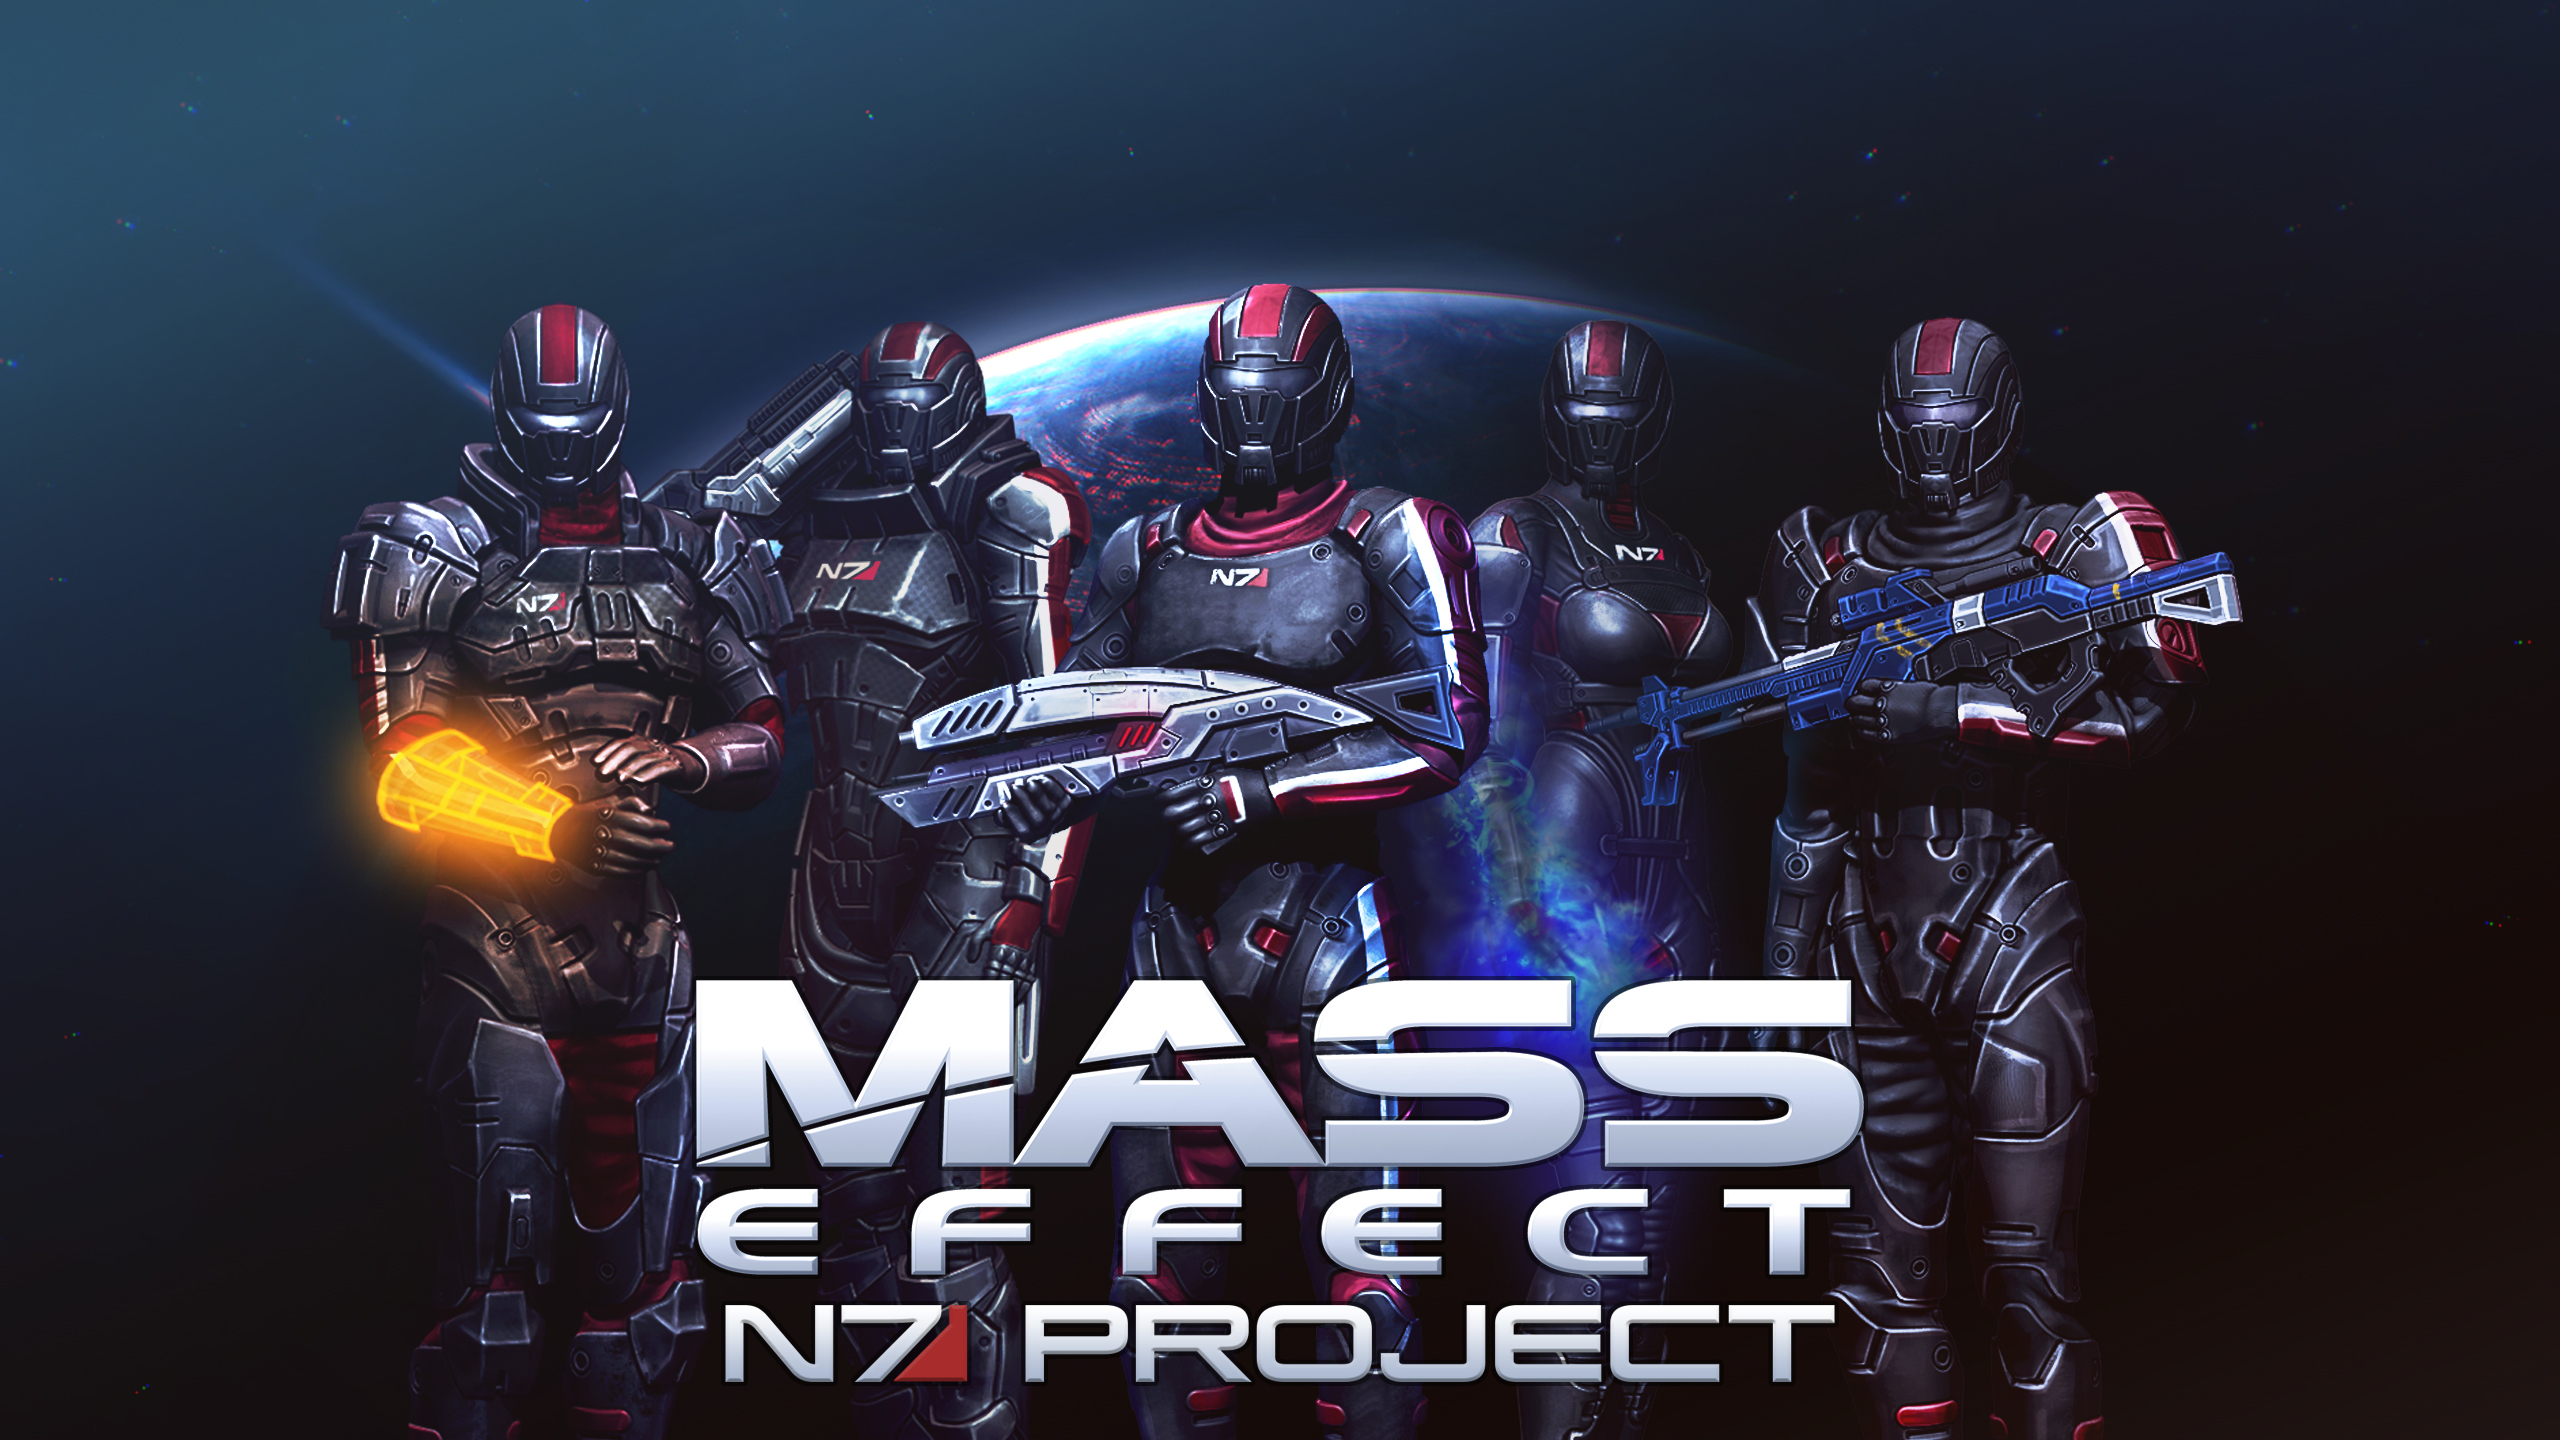 Mass Effect: N7 Project